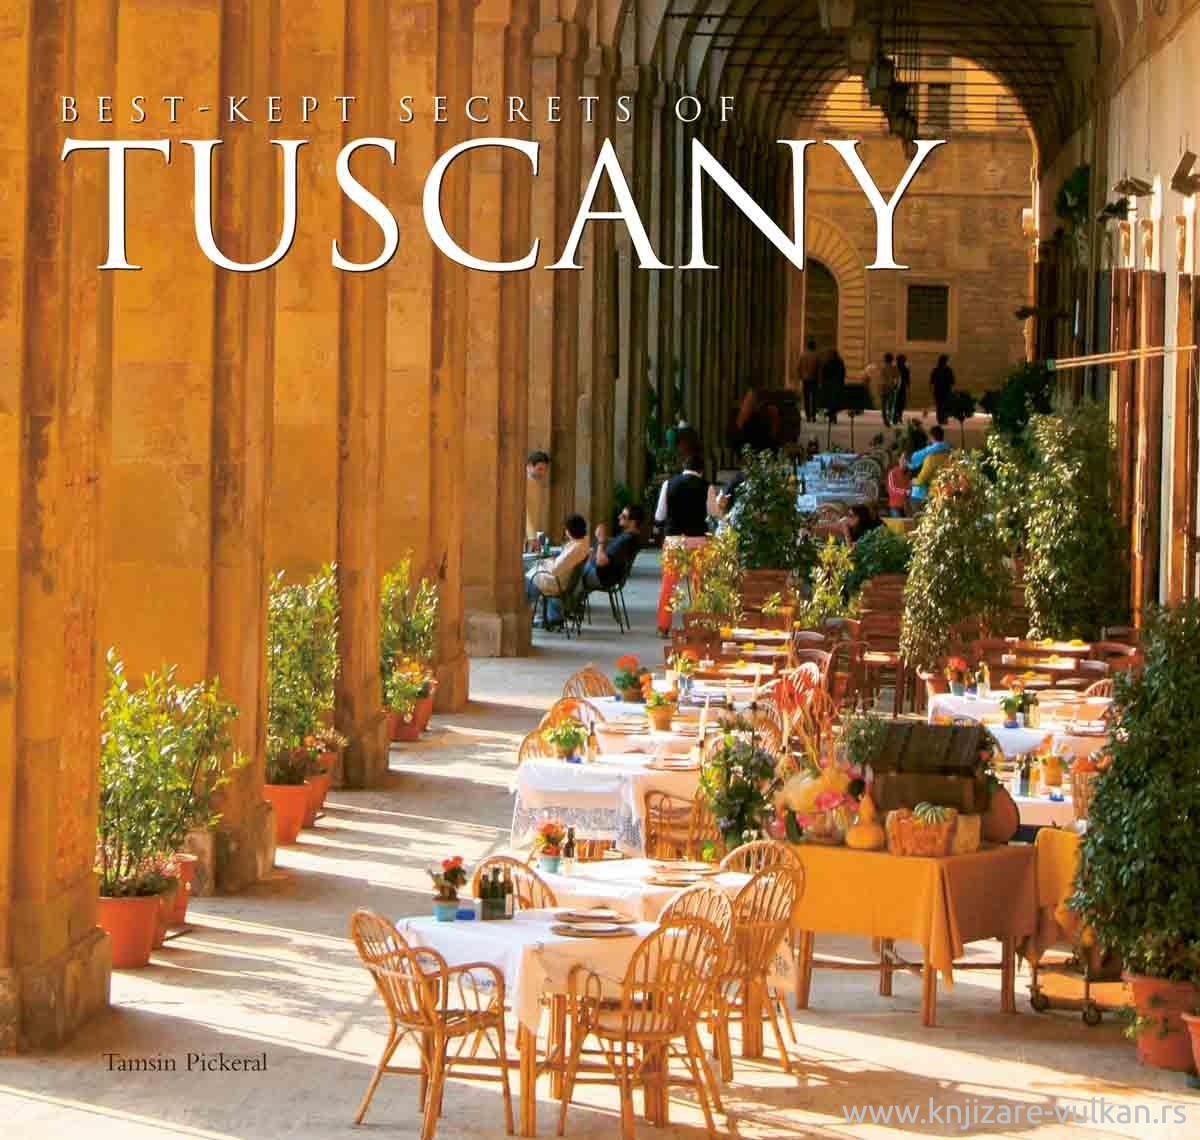 BEST-KEPT SECRETS OF TUSCANY